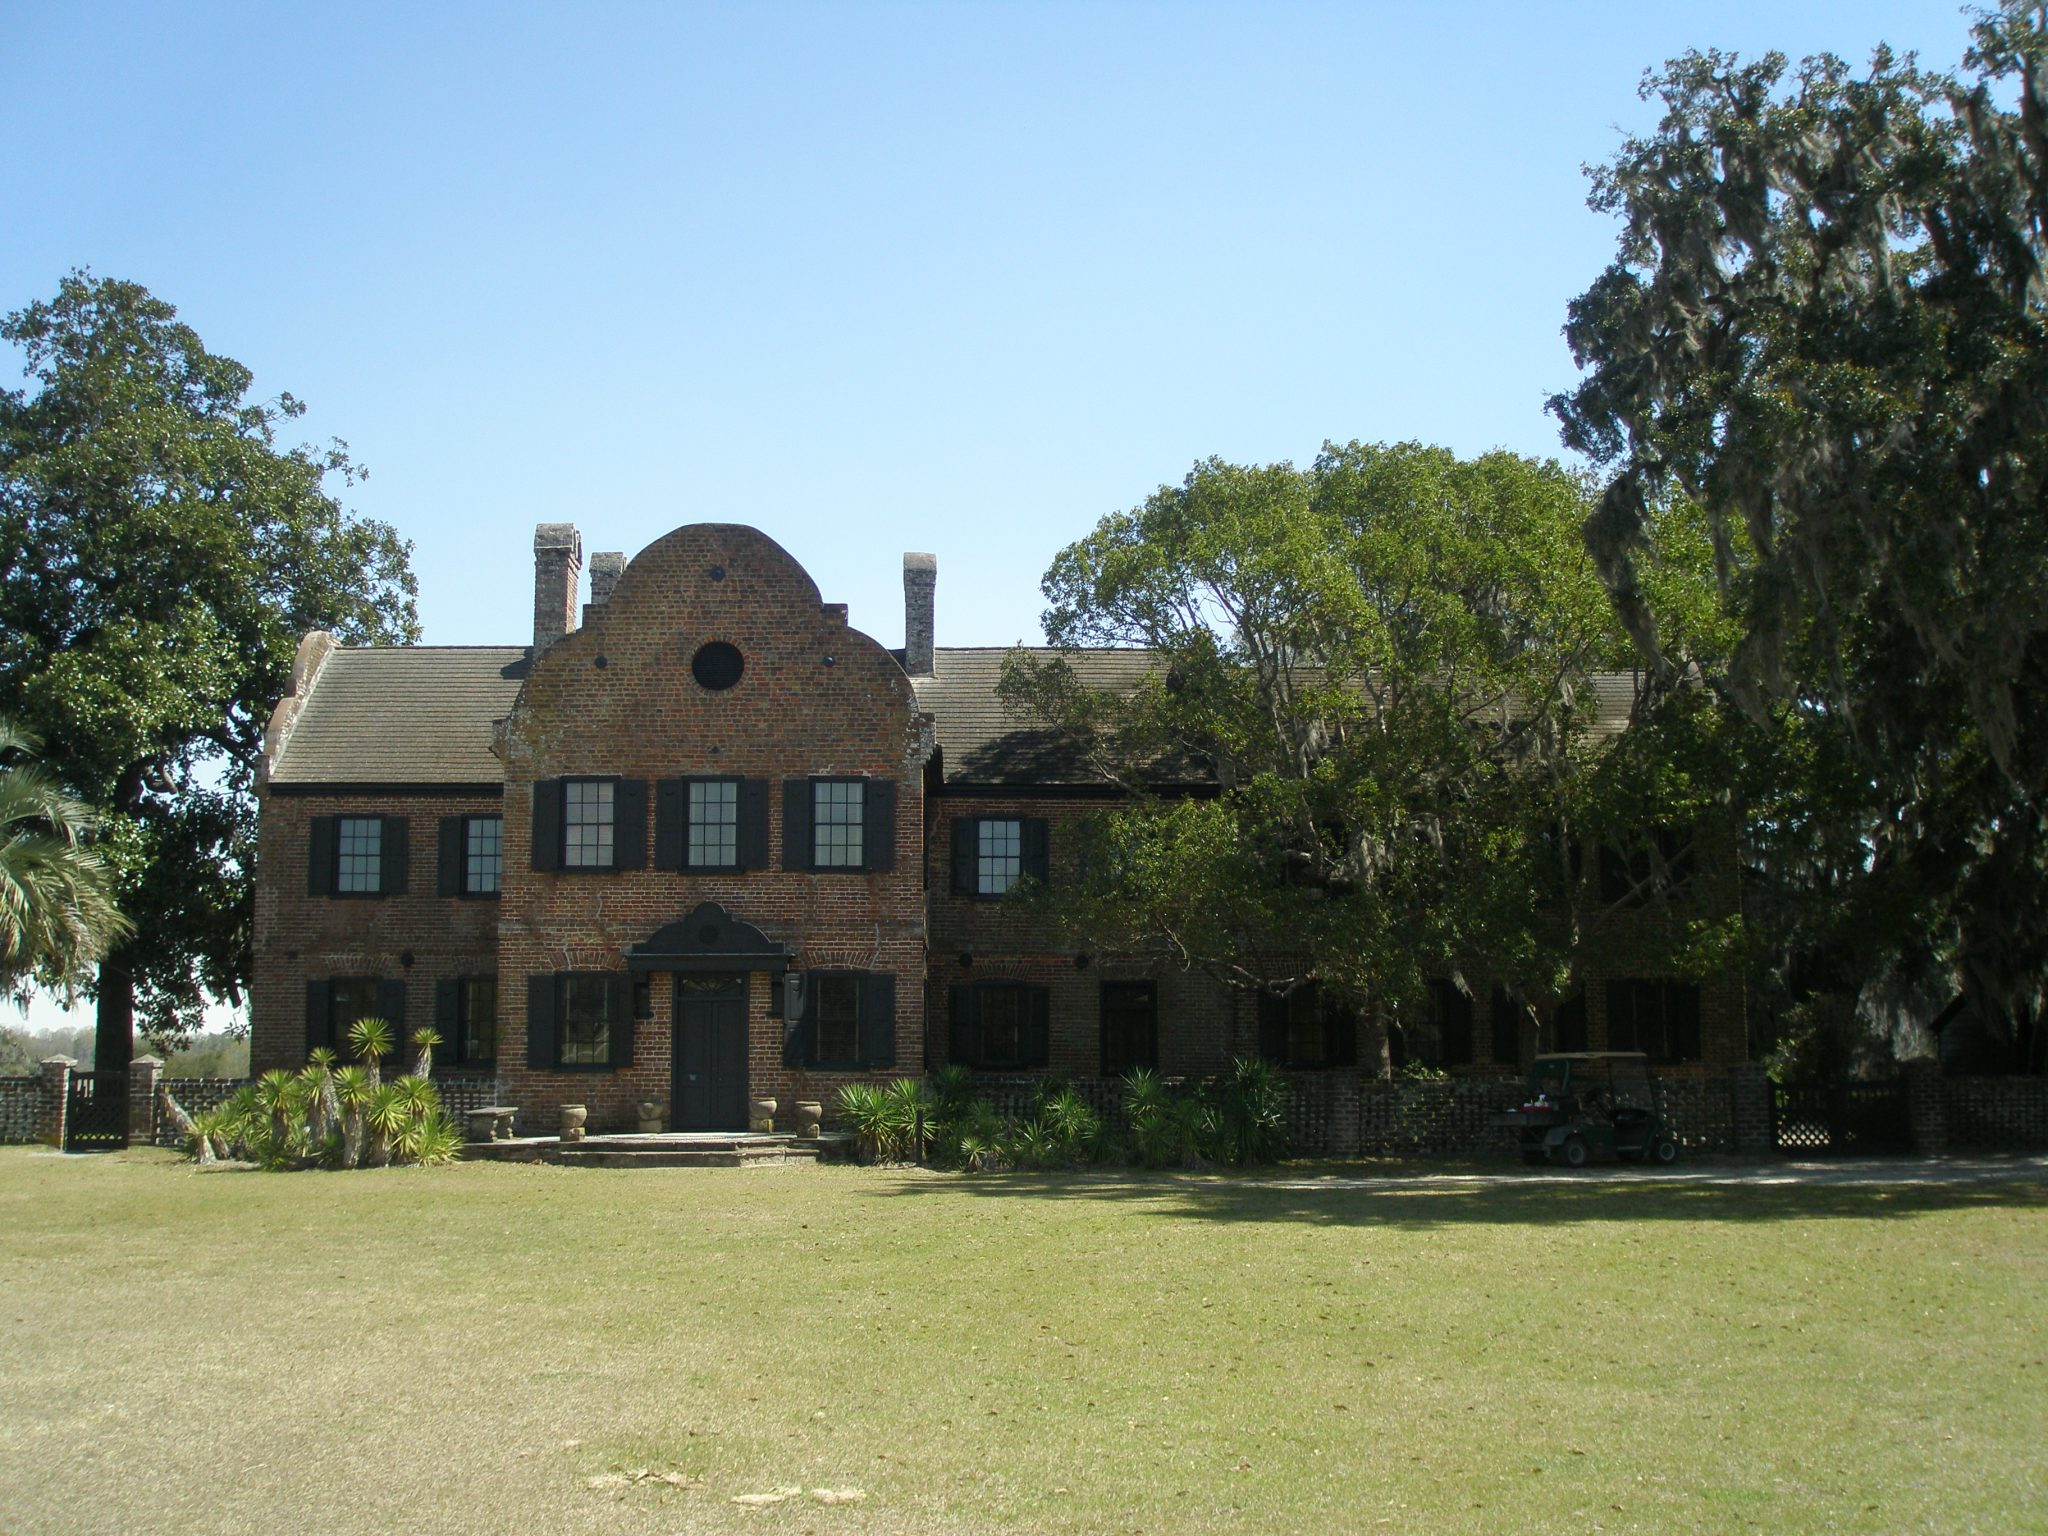 Remaining Original Structure, which faces the Sheep Meadow. This structure was the South-Flanker, one of two dependencies that were alongside the Main House. Today, this building is the House Museum, where generations'-worth of Middleton family possessions are displayed.